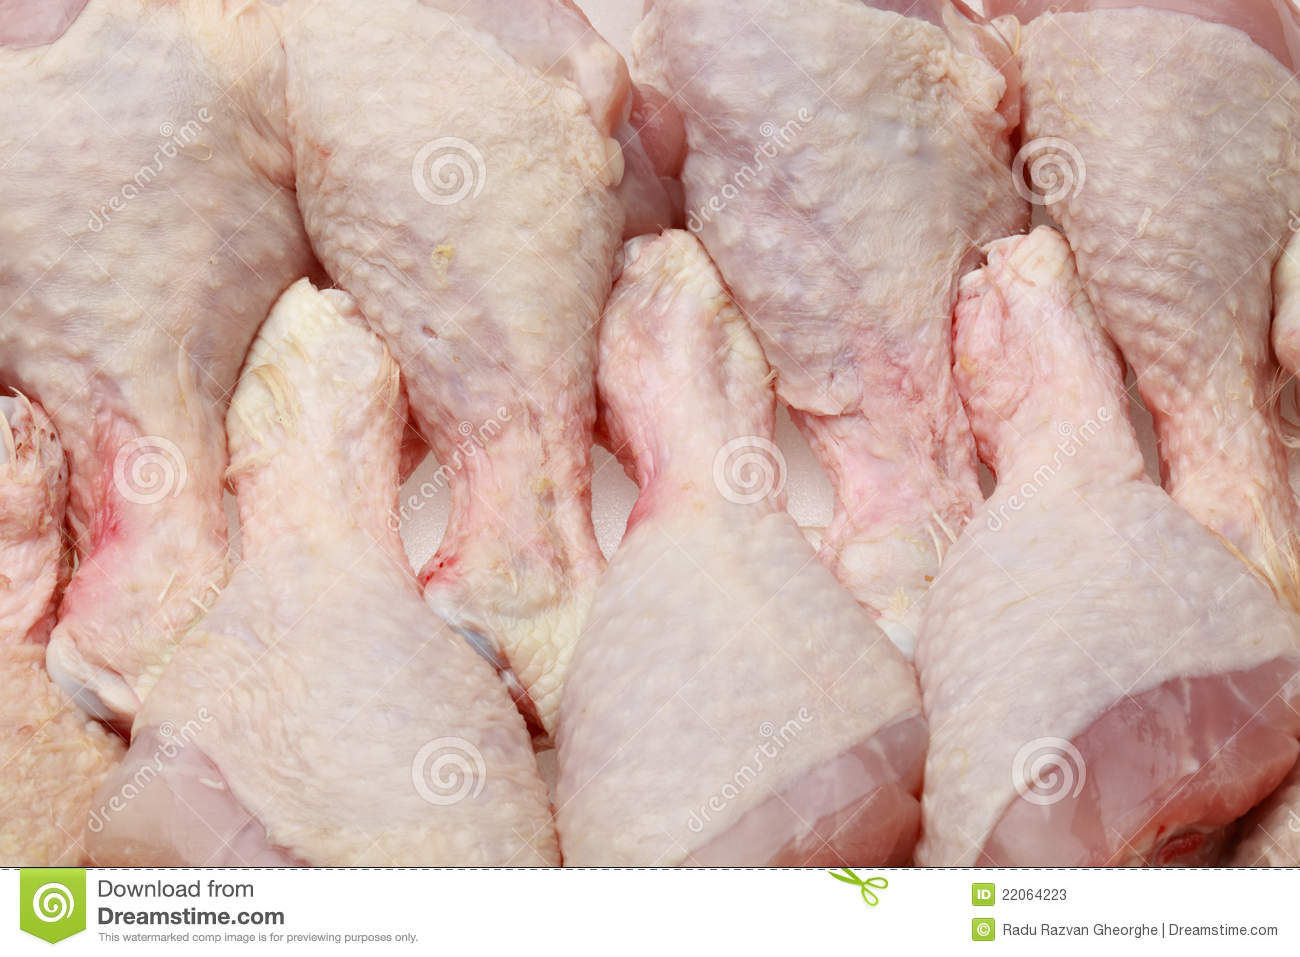 Raw Chicken Drumsticks Stock Photos - Image: 22064223